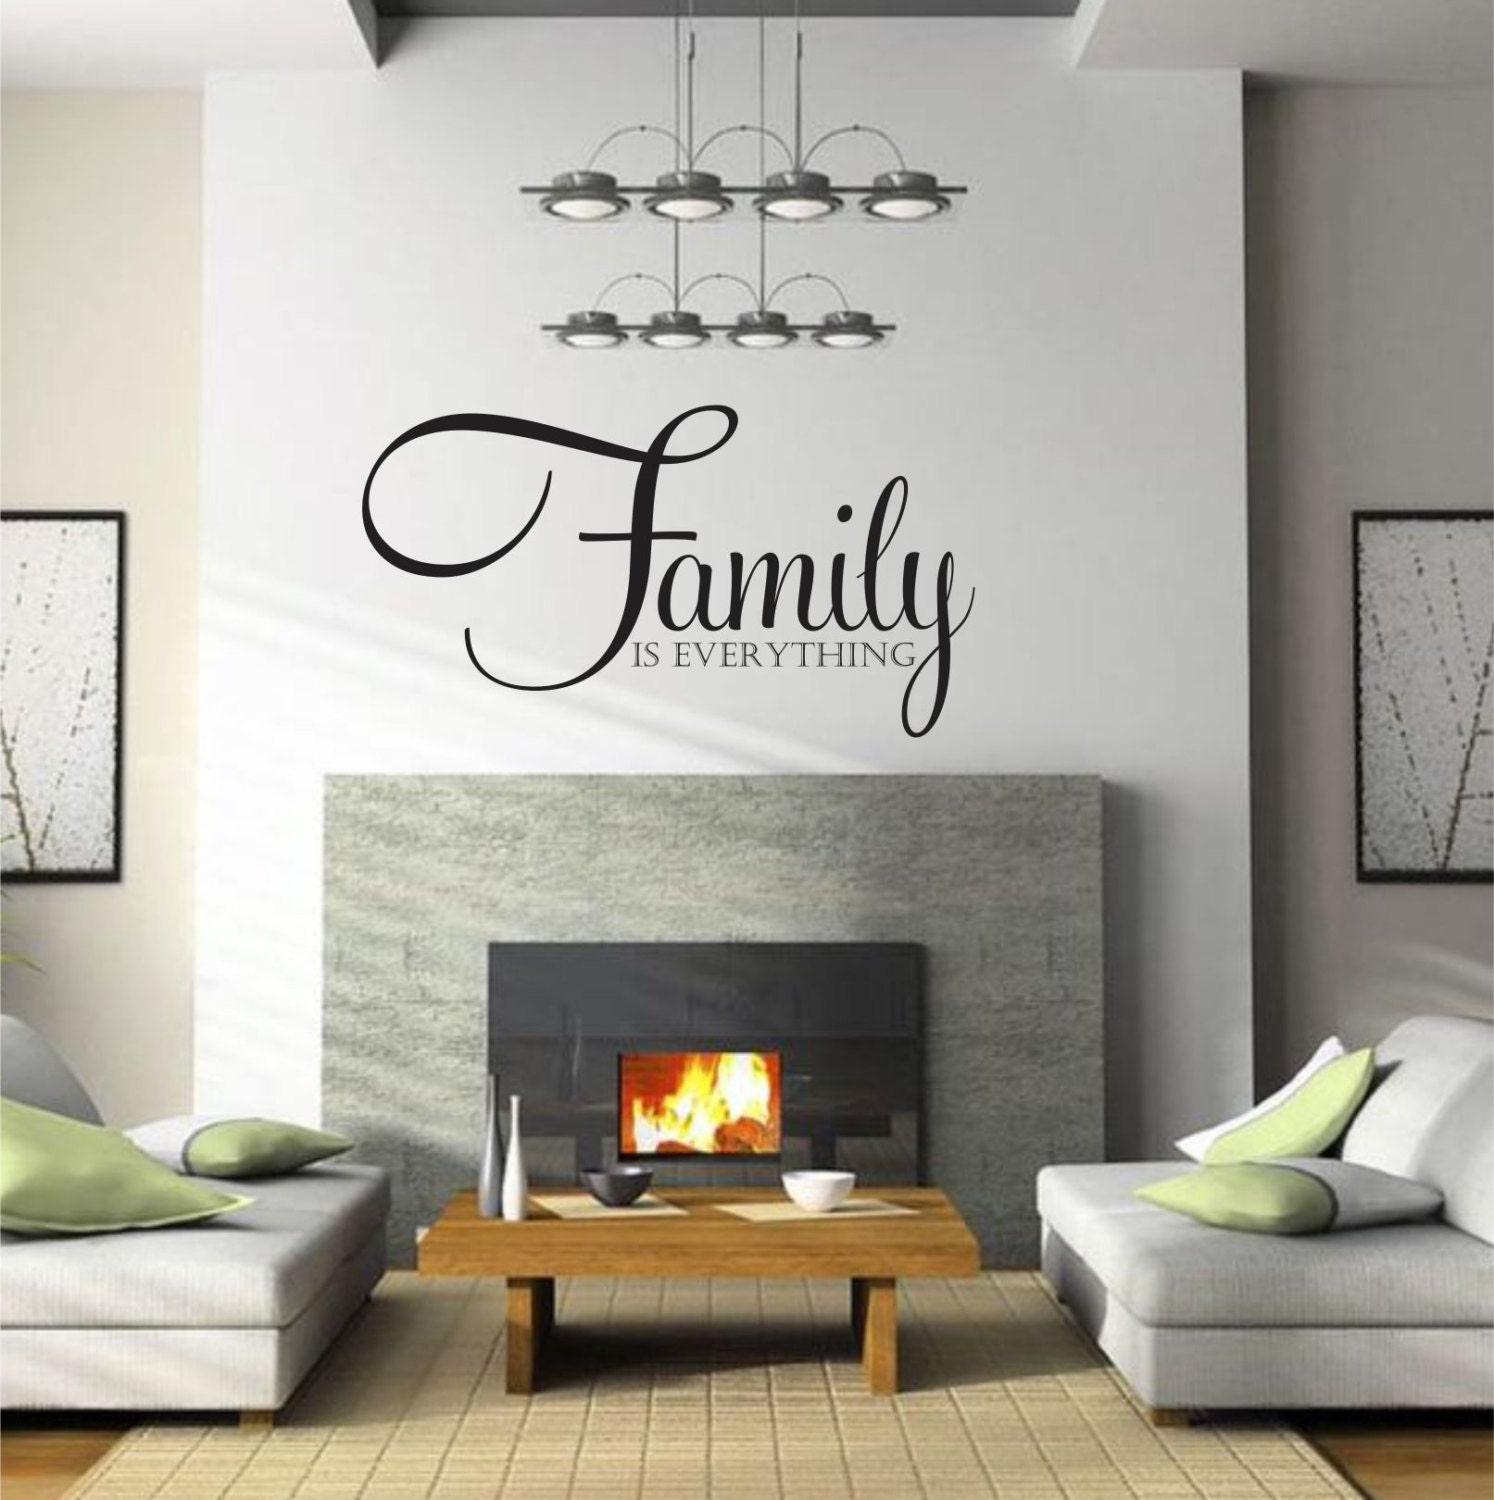 With this listing you will receive one Family Is Everything wall decal.  CUSTOM ORDER DETAILS: During checkout please enter the following information into the Notes box. Choose from over 60 beautiful colors! Please reference the color chart in the listing photos. Important information